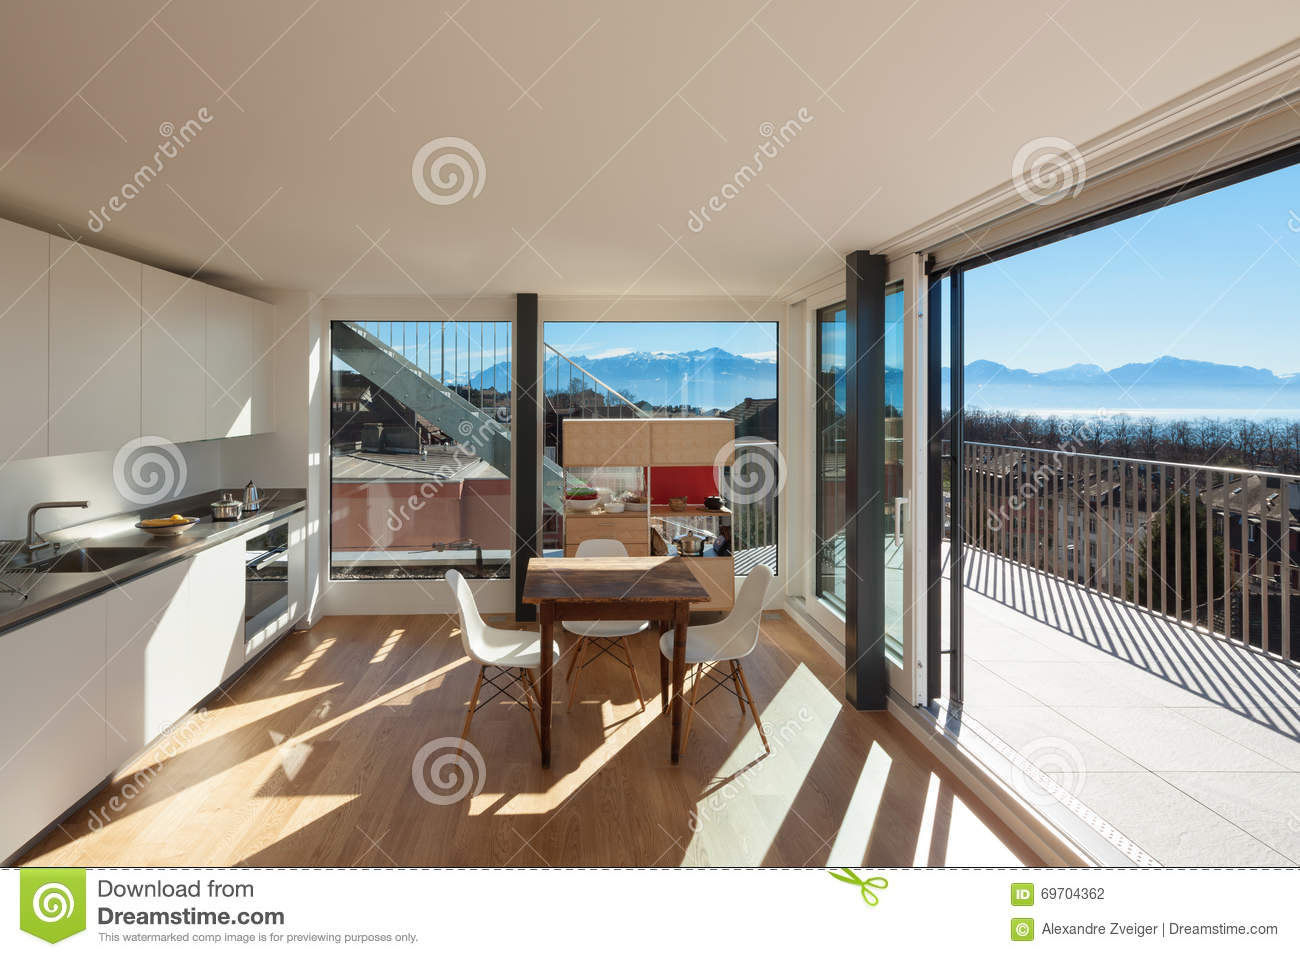 Nice kitchen interior stock photo image 69704362 - Nice interior pic ...